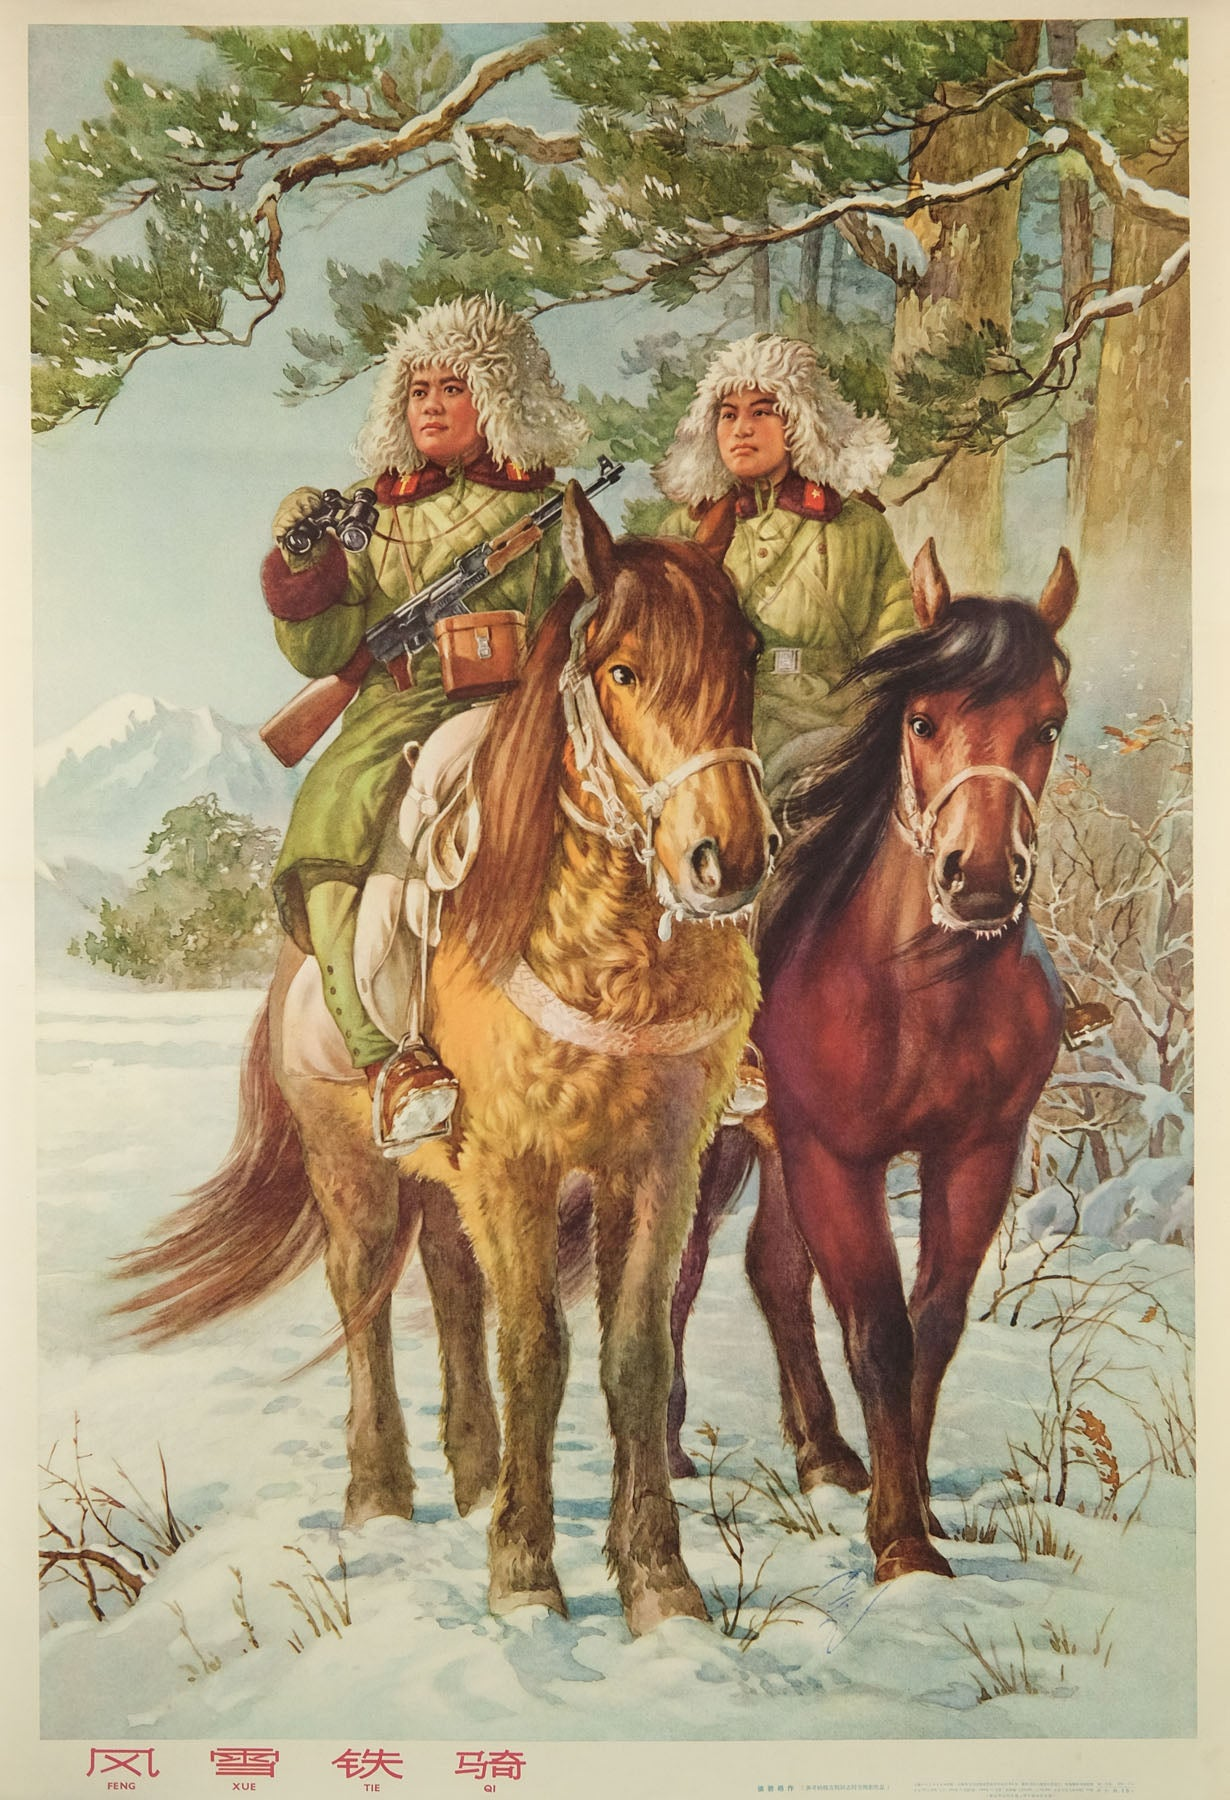 image of the original vintage 1964 Chinese communist propaganda poster by Zhang Biwu titled Crack cavalry in the wind and snow published by Shanghai People's Fine Art Publishing House